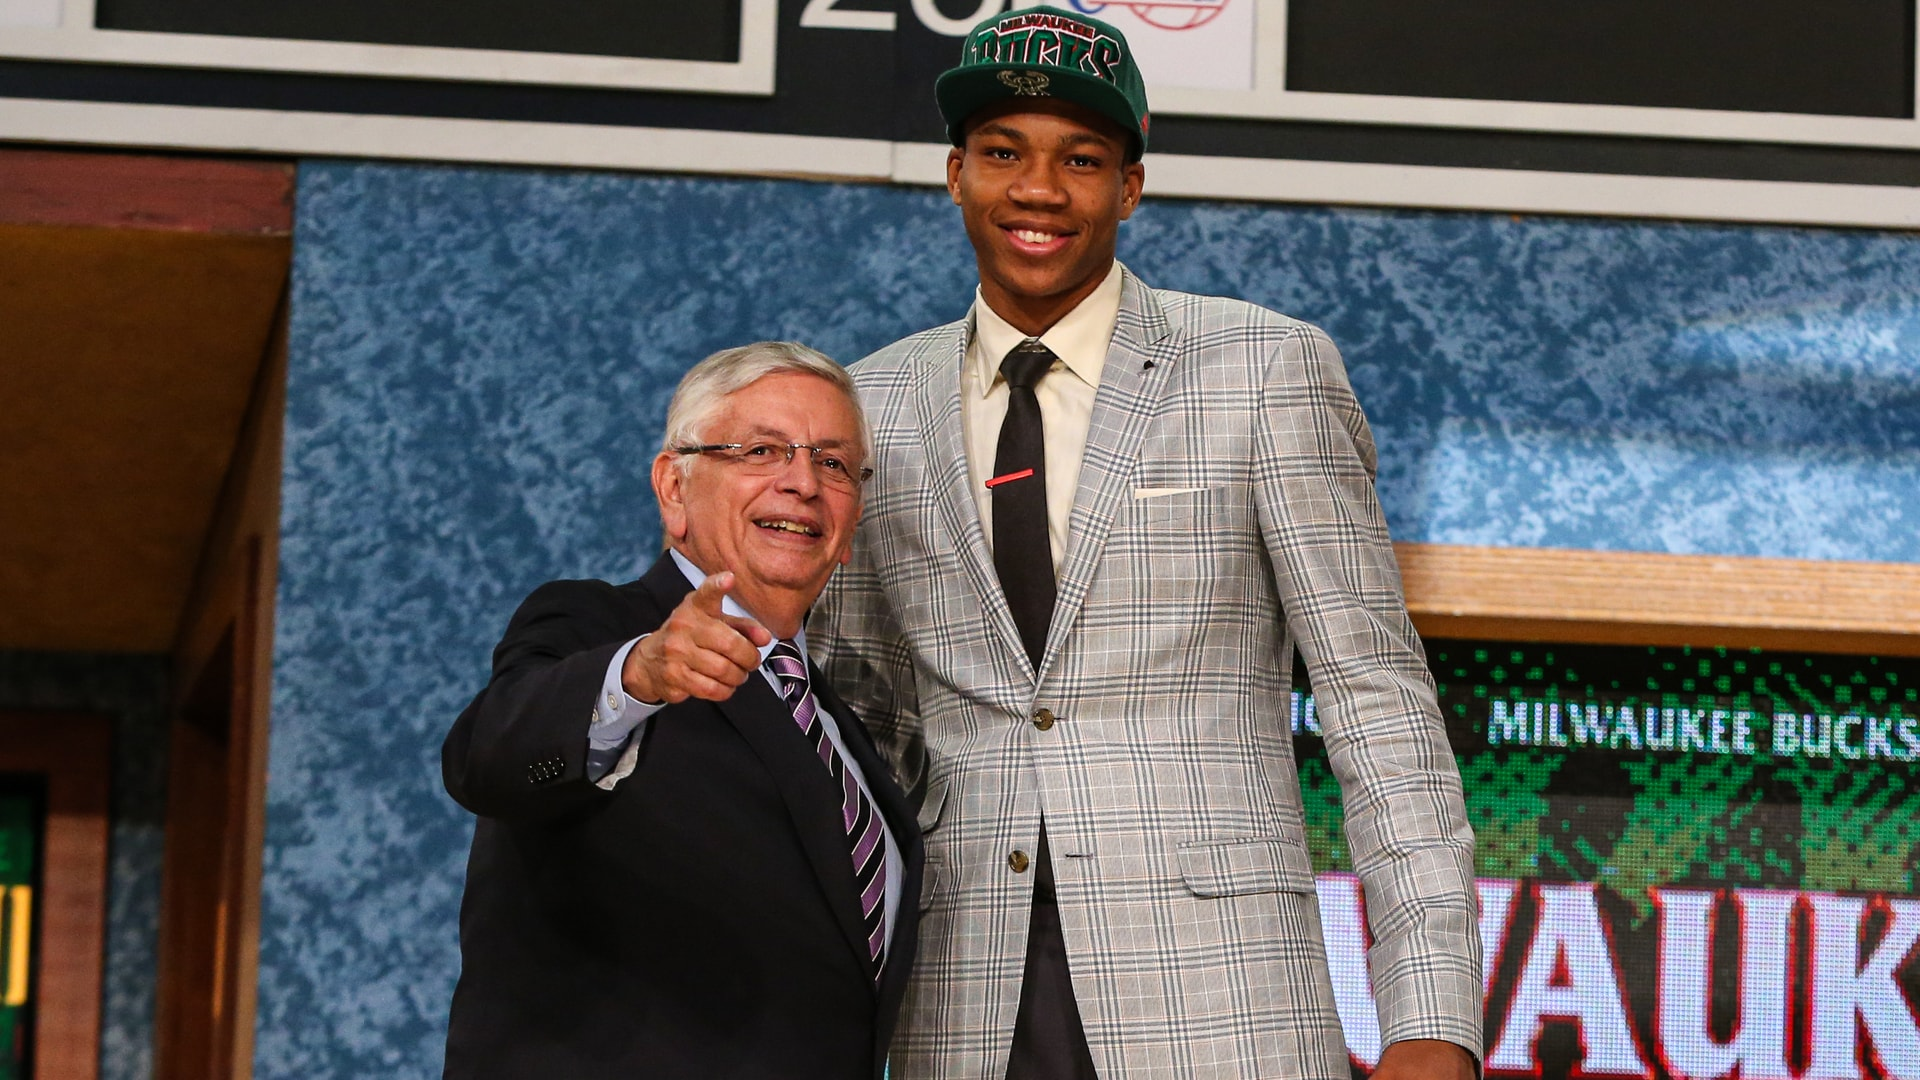 On This Date: Milwaukee Bucks Select Giannis Antetokounmpo | 6.27.13